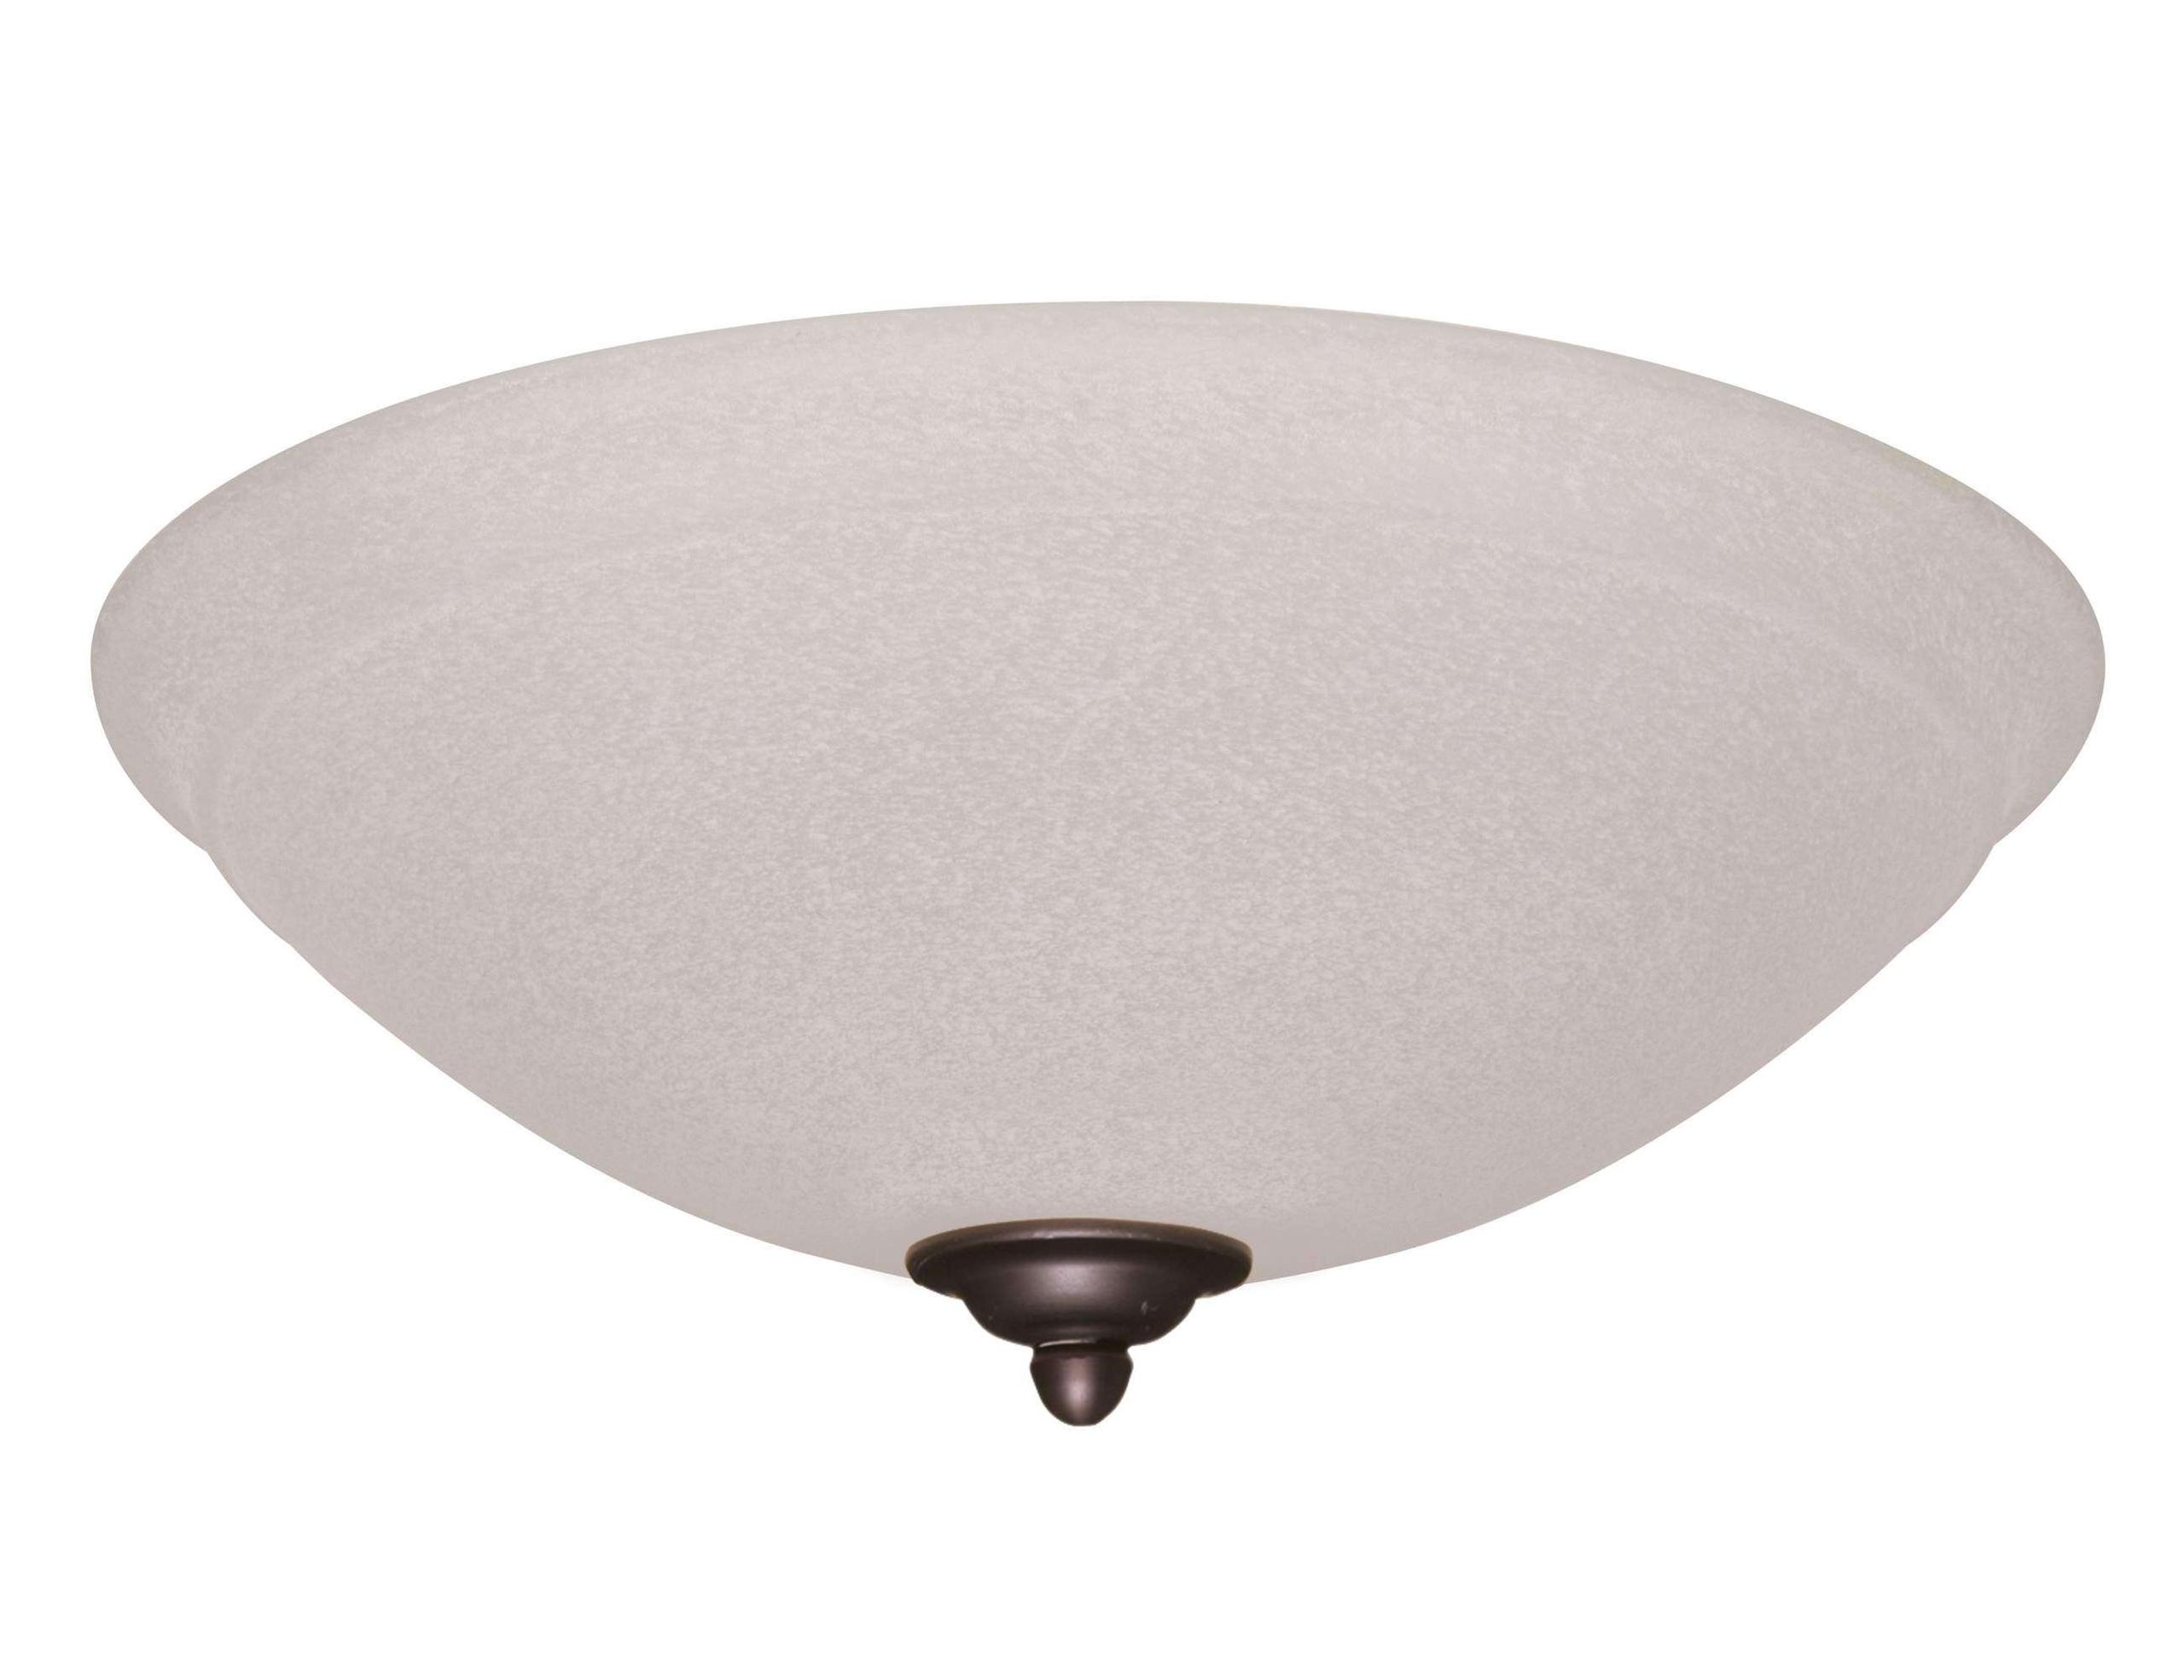 Emerson Light Fixture Model LK91ORB (finish shown may differ from actual finish)